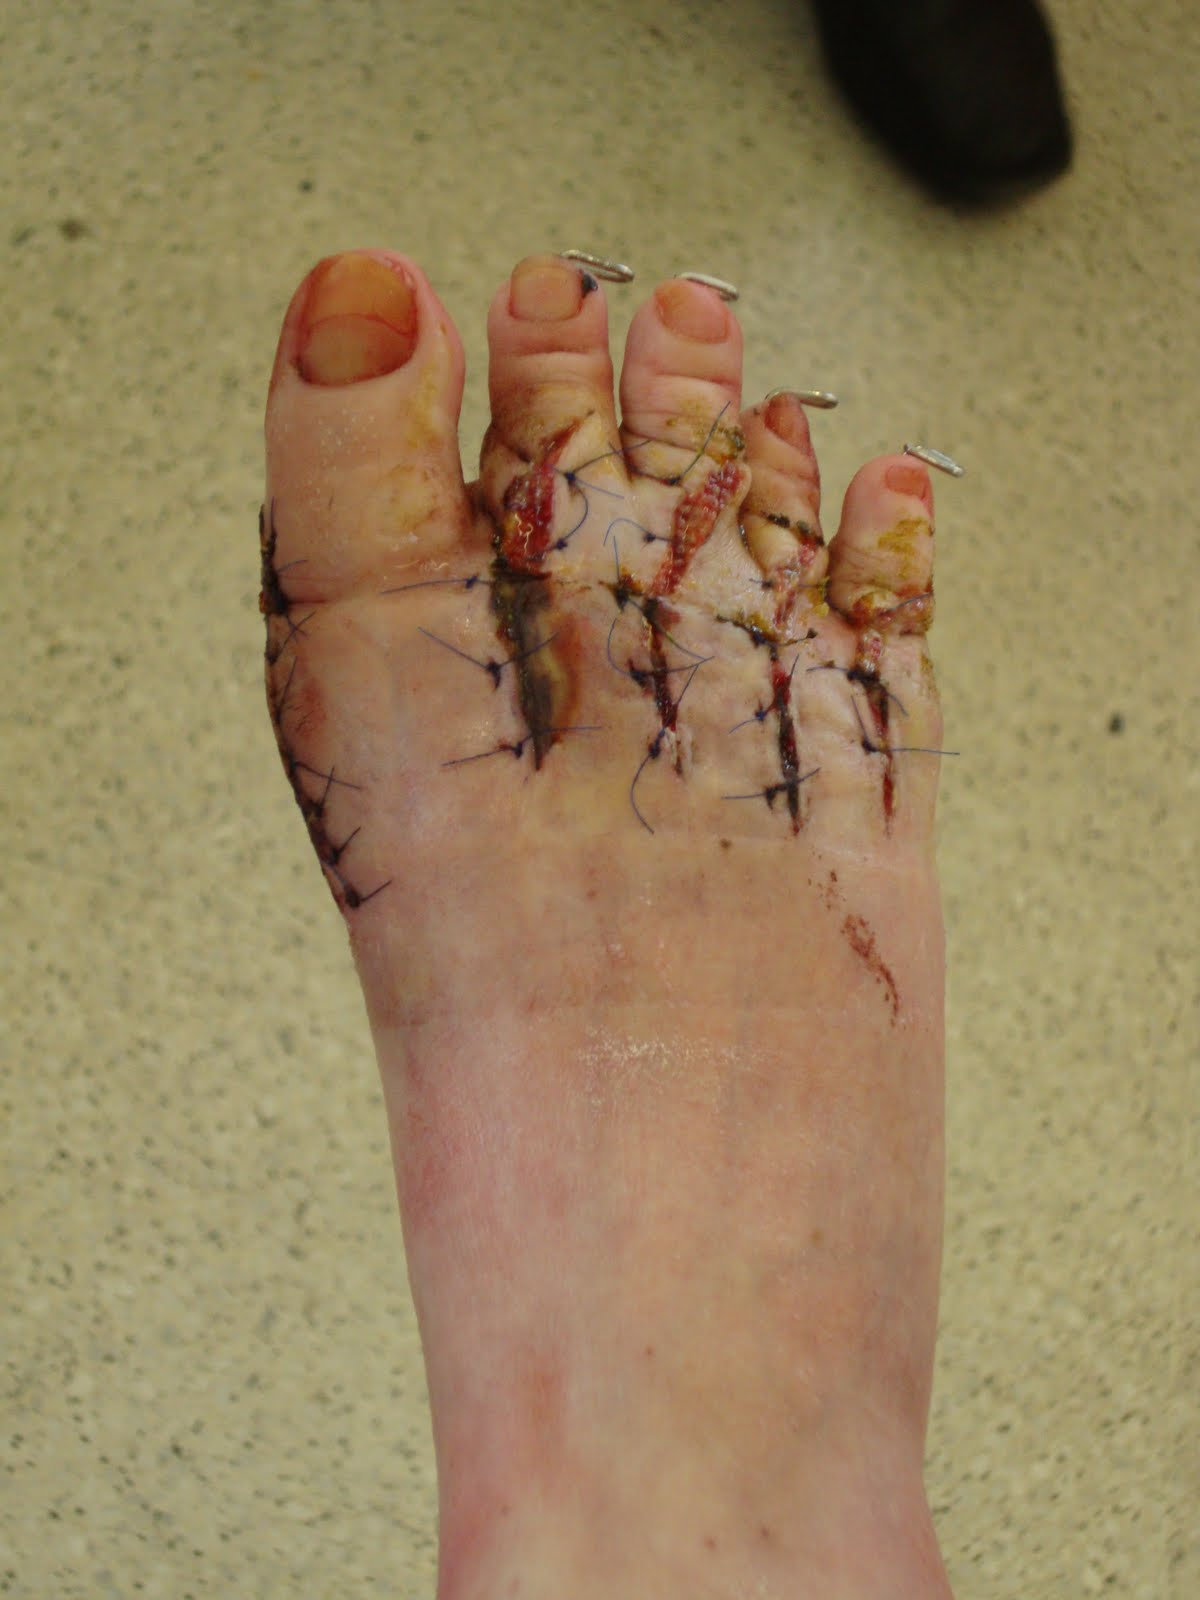 Bianca039s feet after 50 hours in water